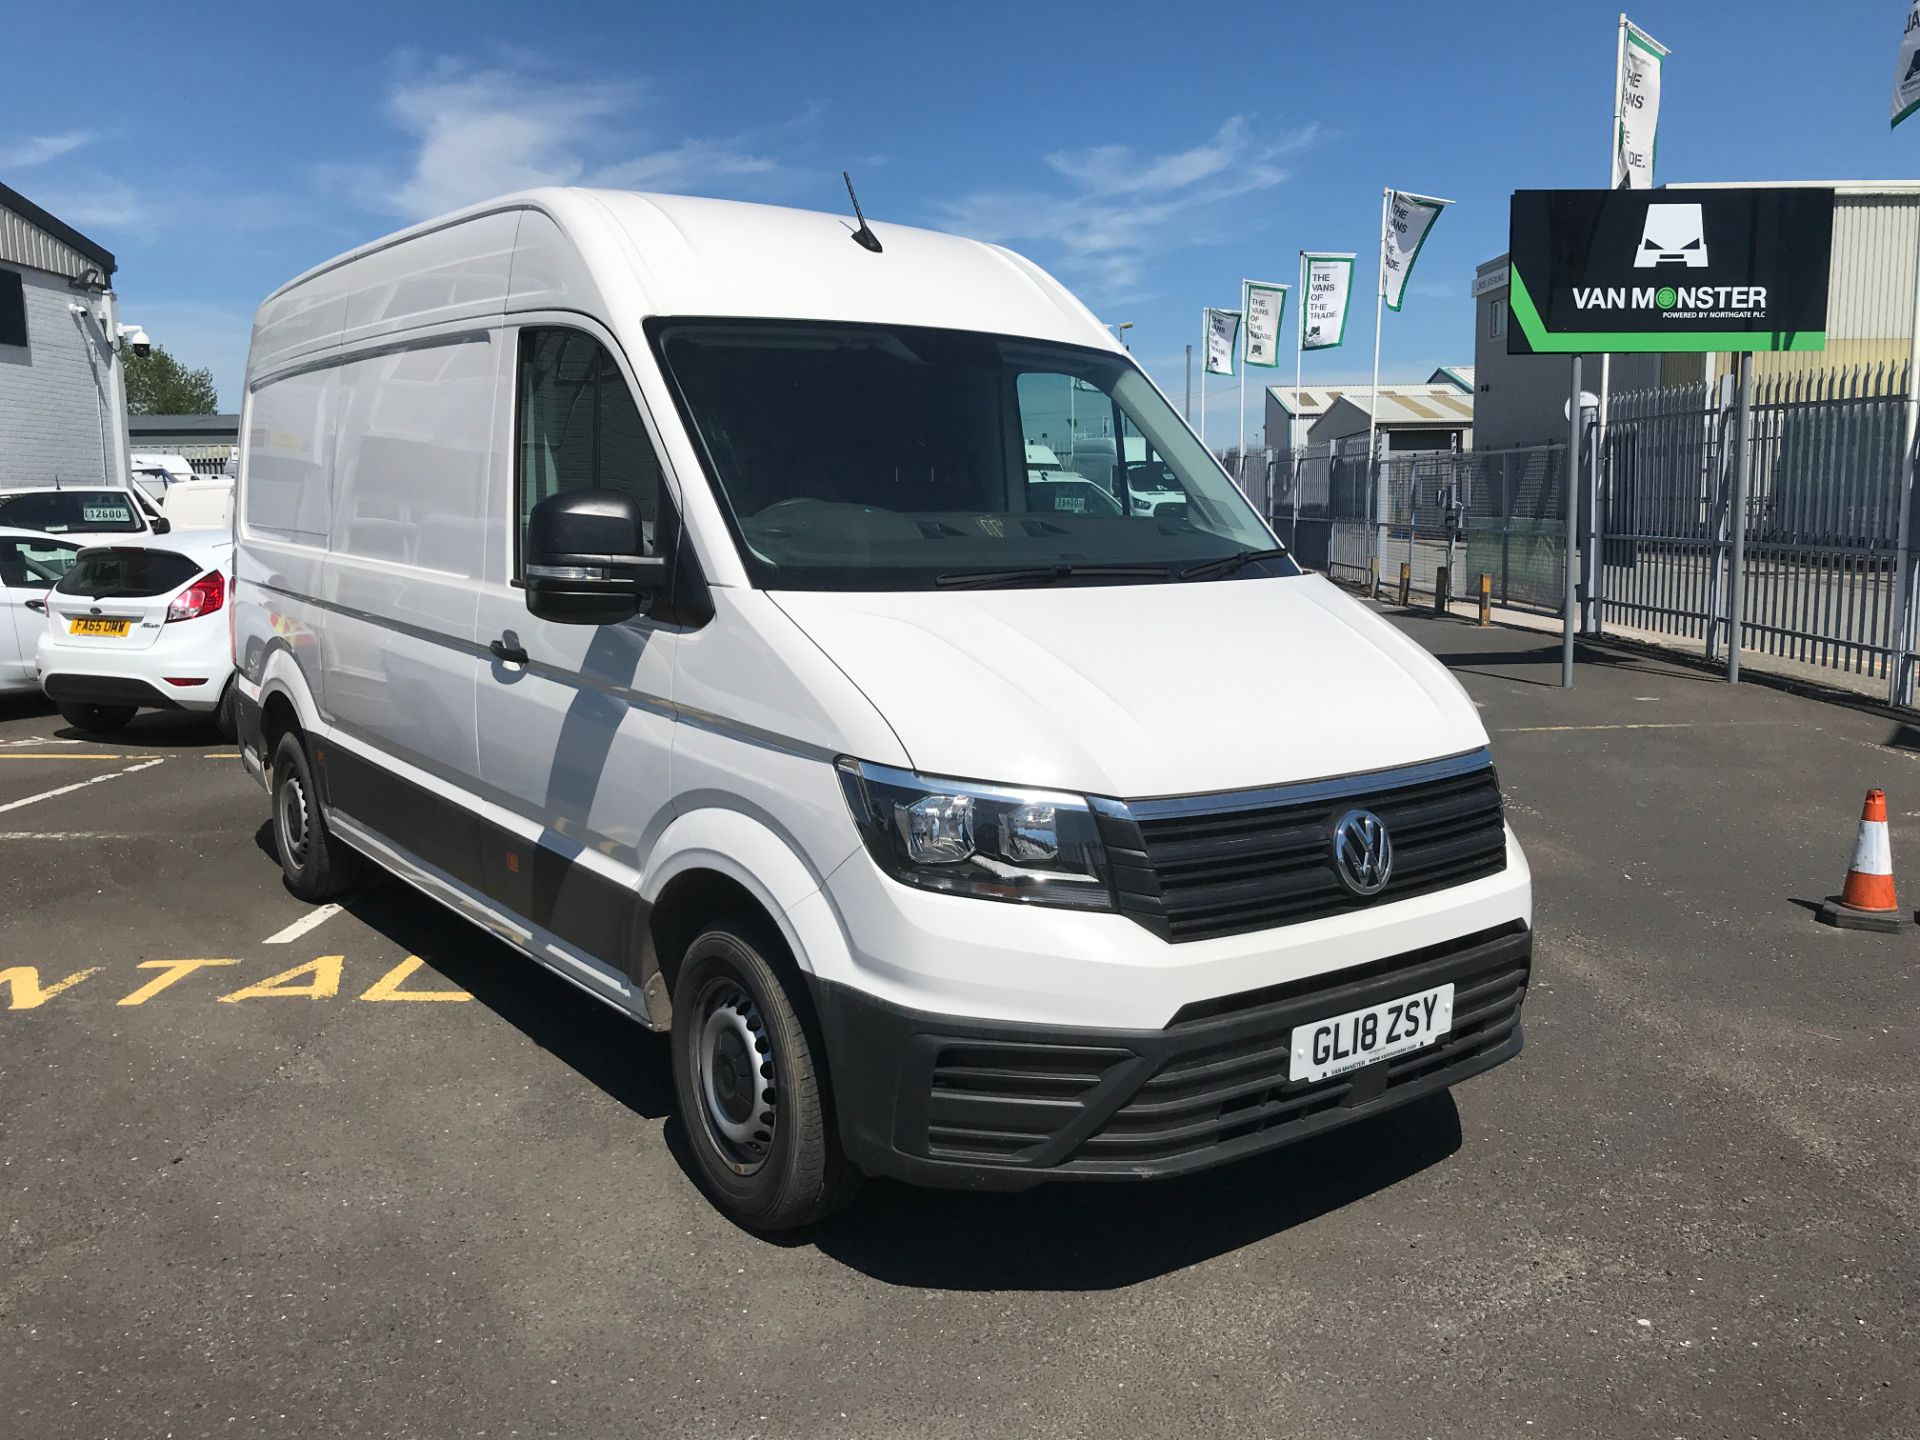 2018 Volkswagen Crafter CR35 MWB 2.0TDI HIGH ROOF 140PS EURO 6 (GL18ZSY)